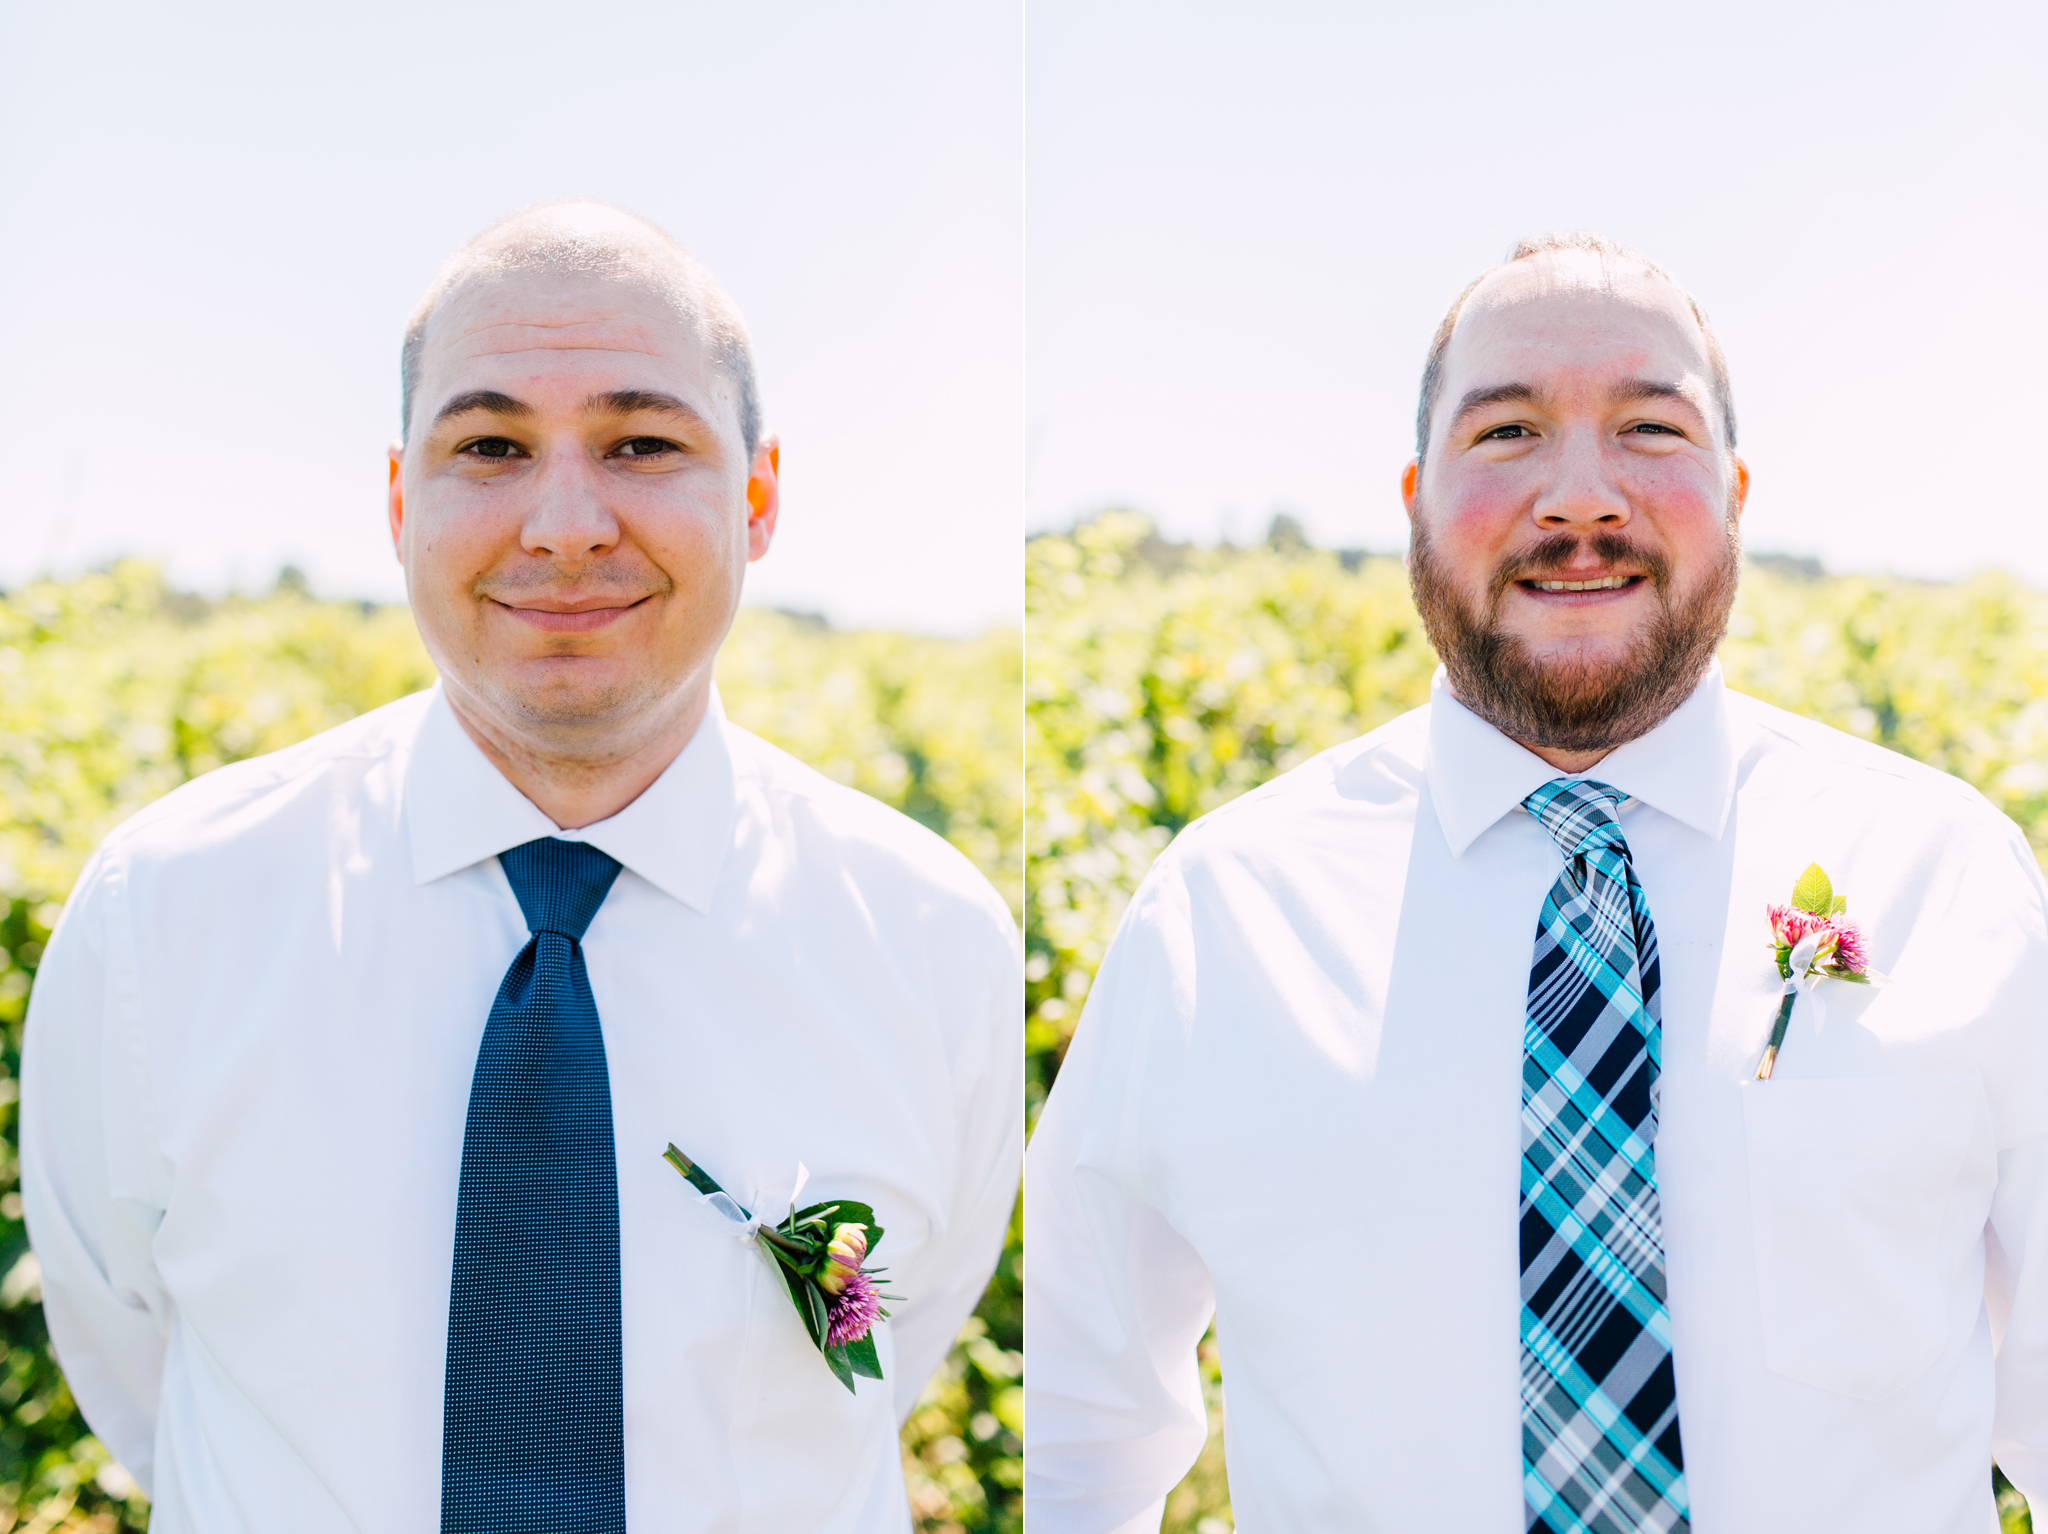 037-bellingham-wedding-photographer-samson-winery-katheryn-moran.jpg